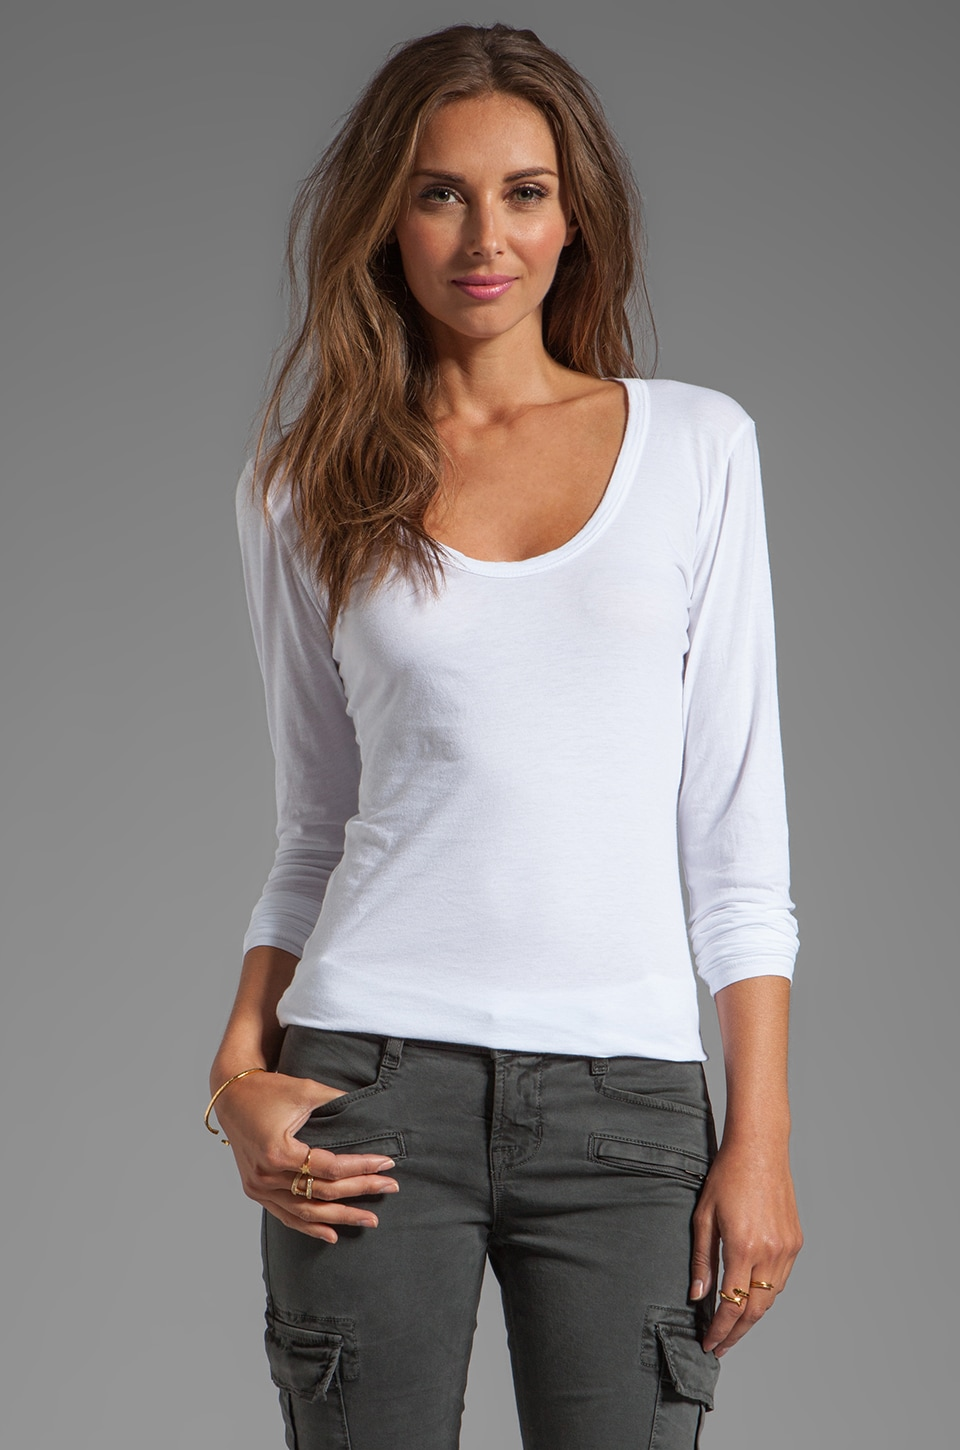 Velvet by Graham & Spencer Zipporah Gauzy Whisper Classic Long Sleeve in White